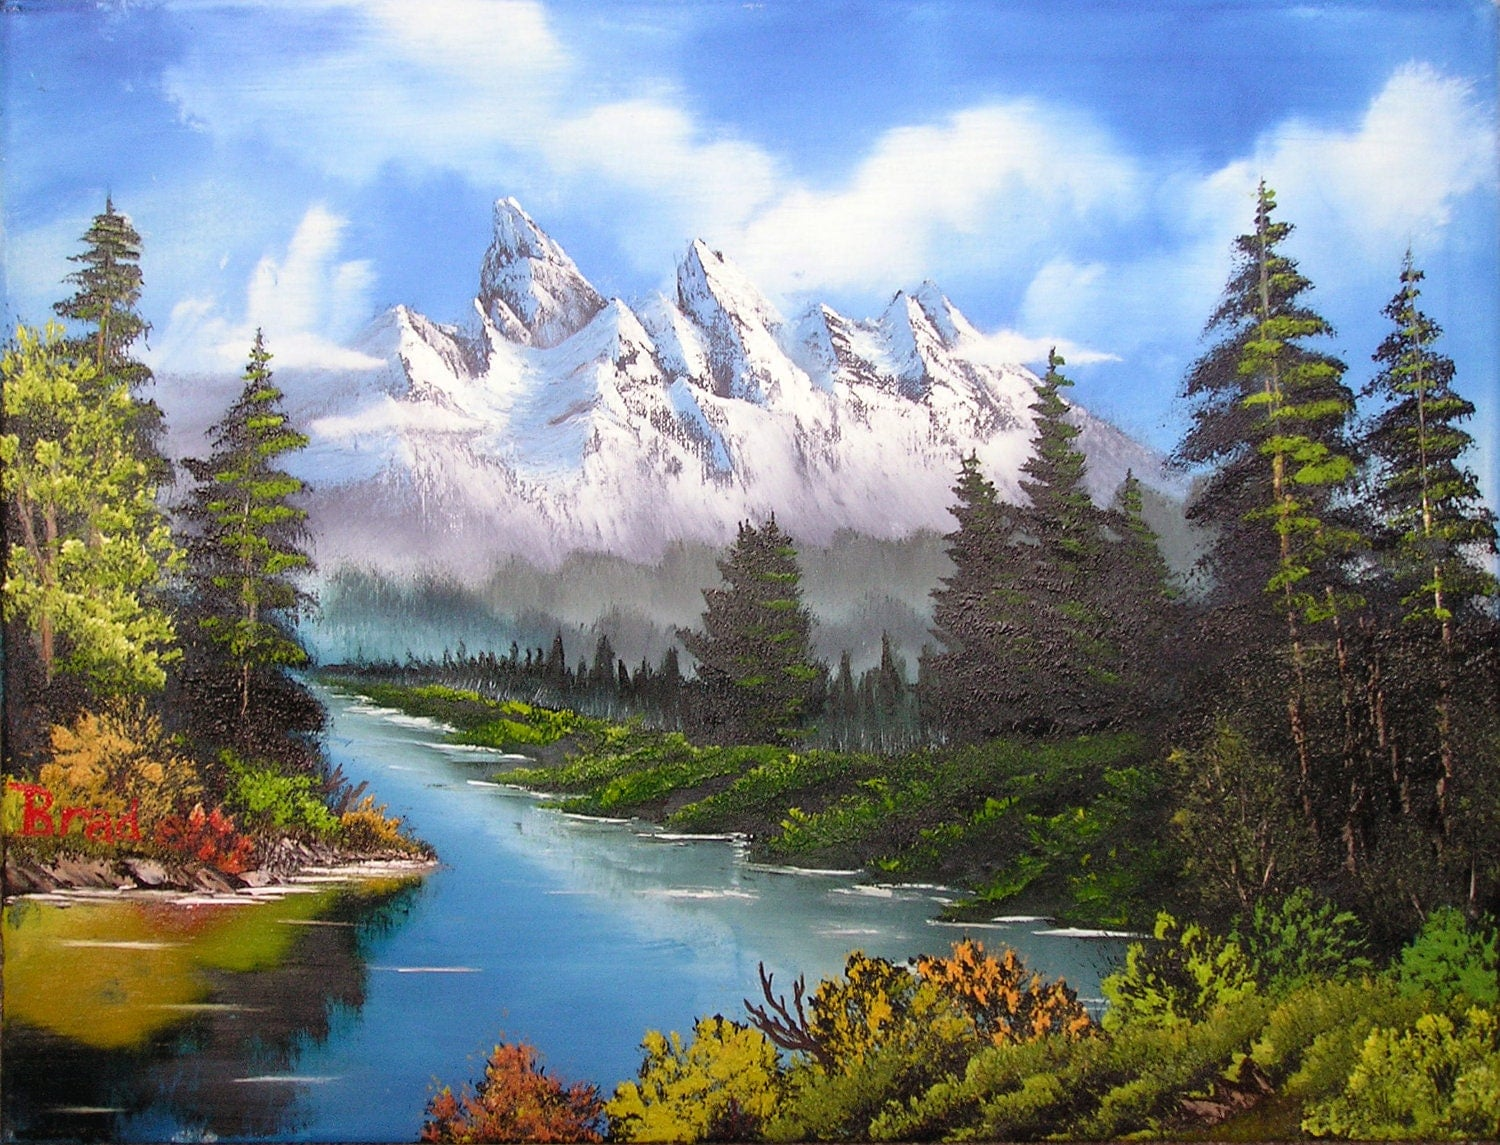 the bob ross painting method essay Sign up with facebook, twitter or google your otherpaperscom data will be completely private, secure and will not be posted to your facebook wall or tweeted.